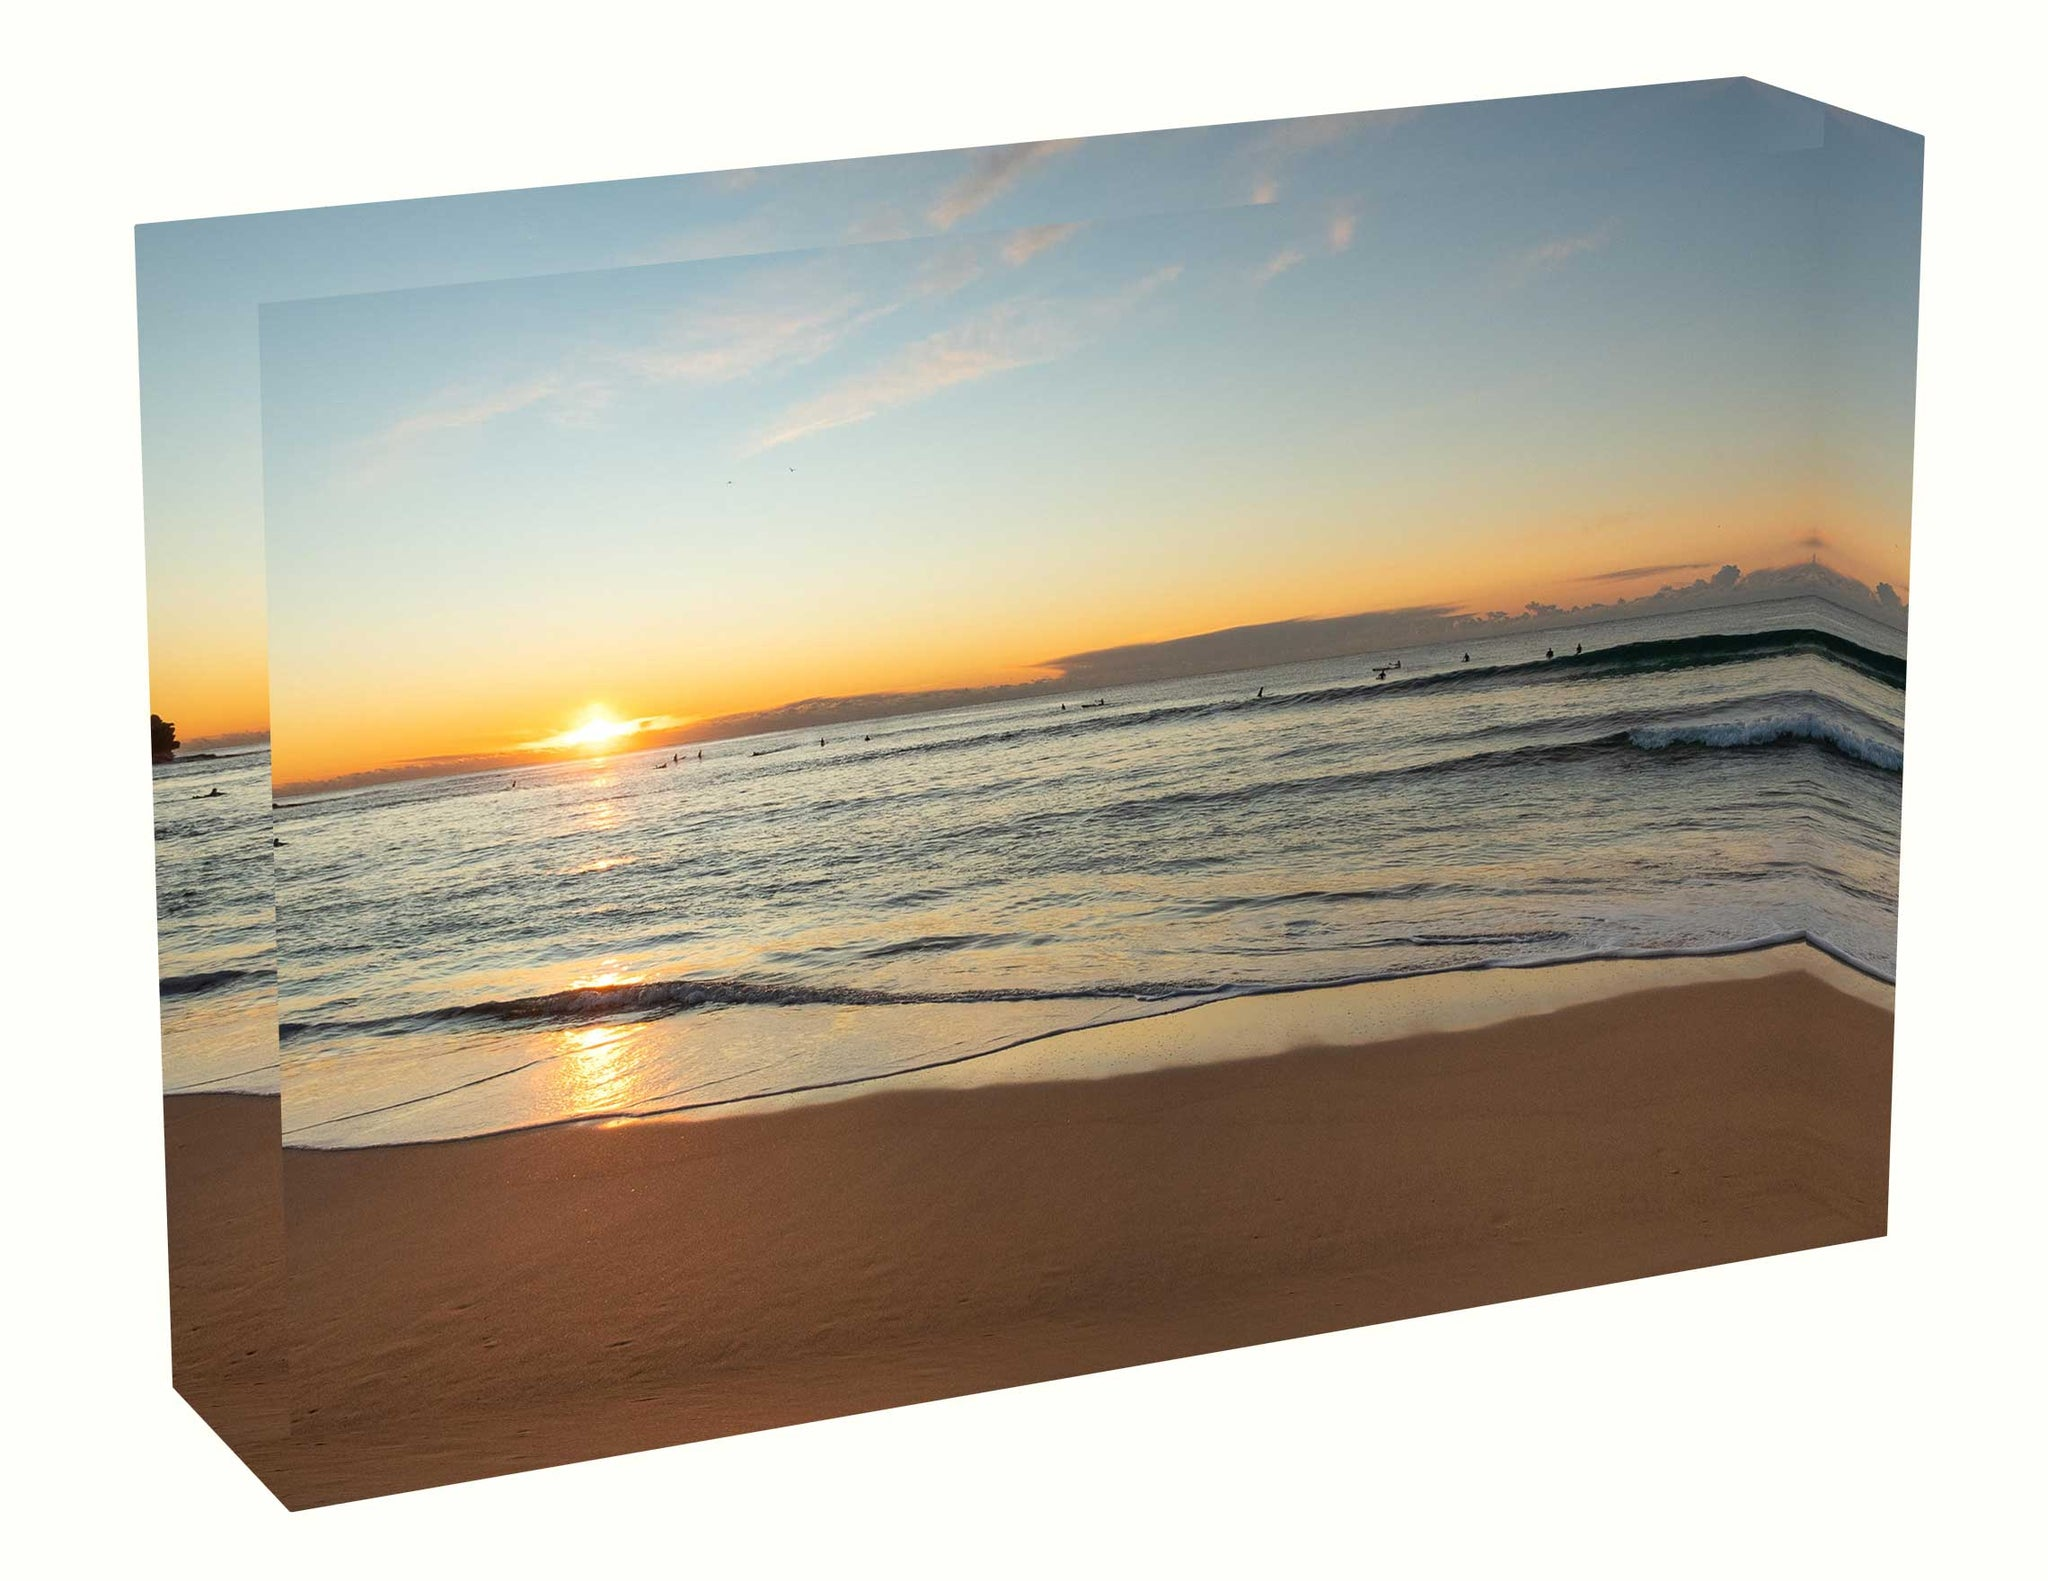 Acrylic block Sunrise photo from the 23 June 2020 at Queenscliff Beach in Sydney